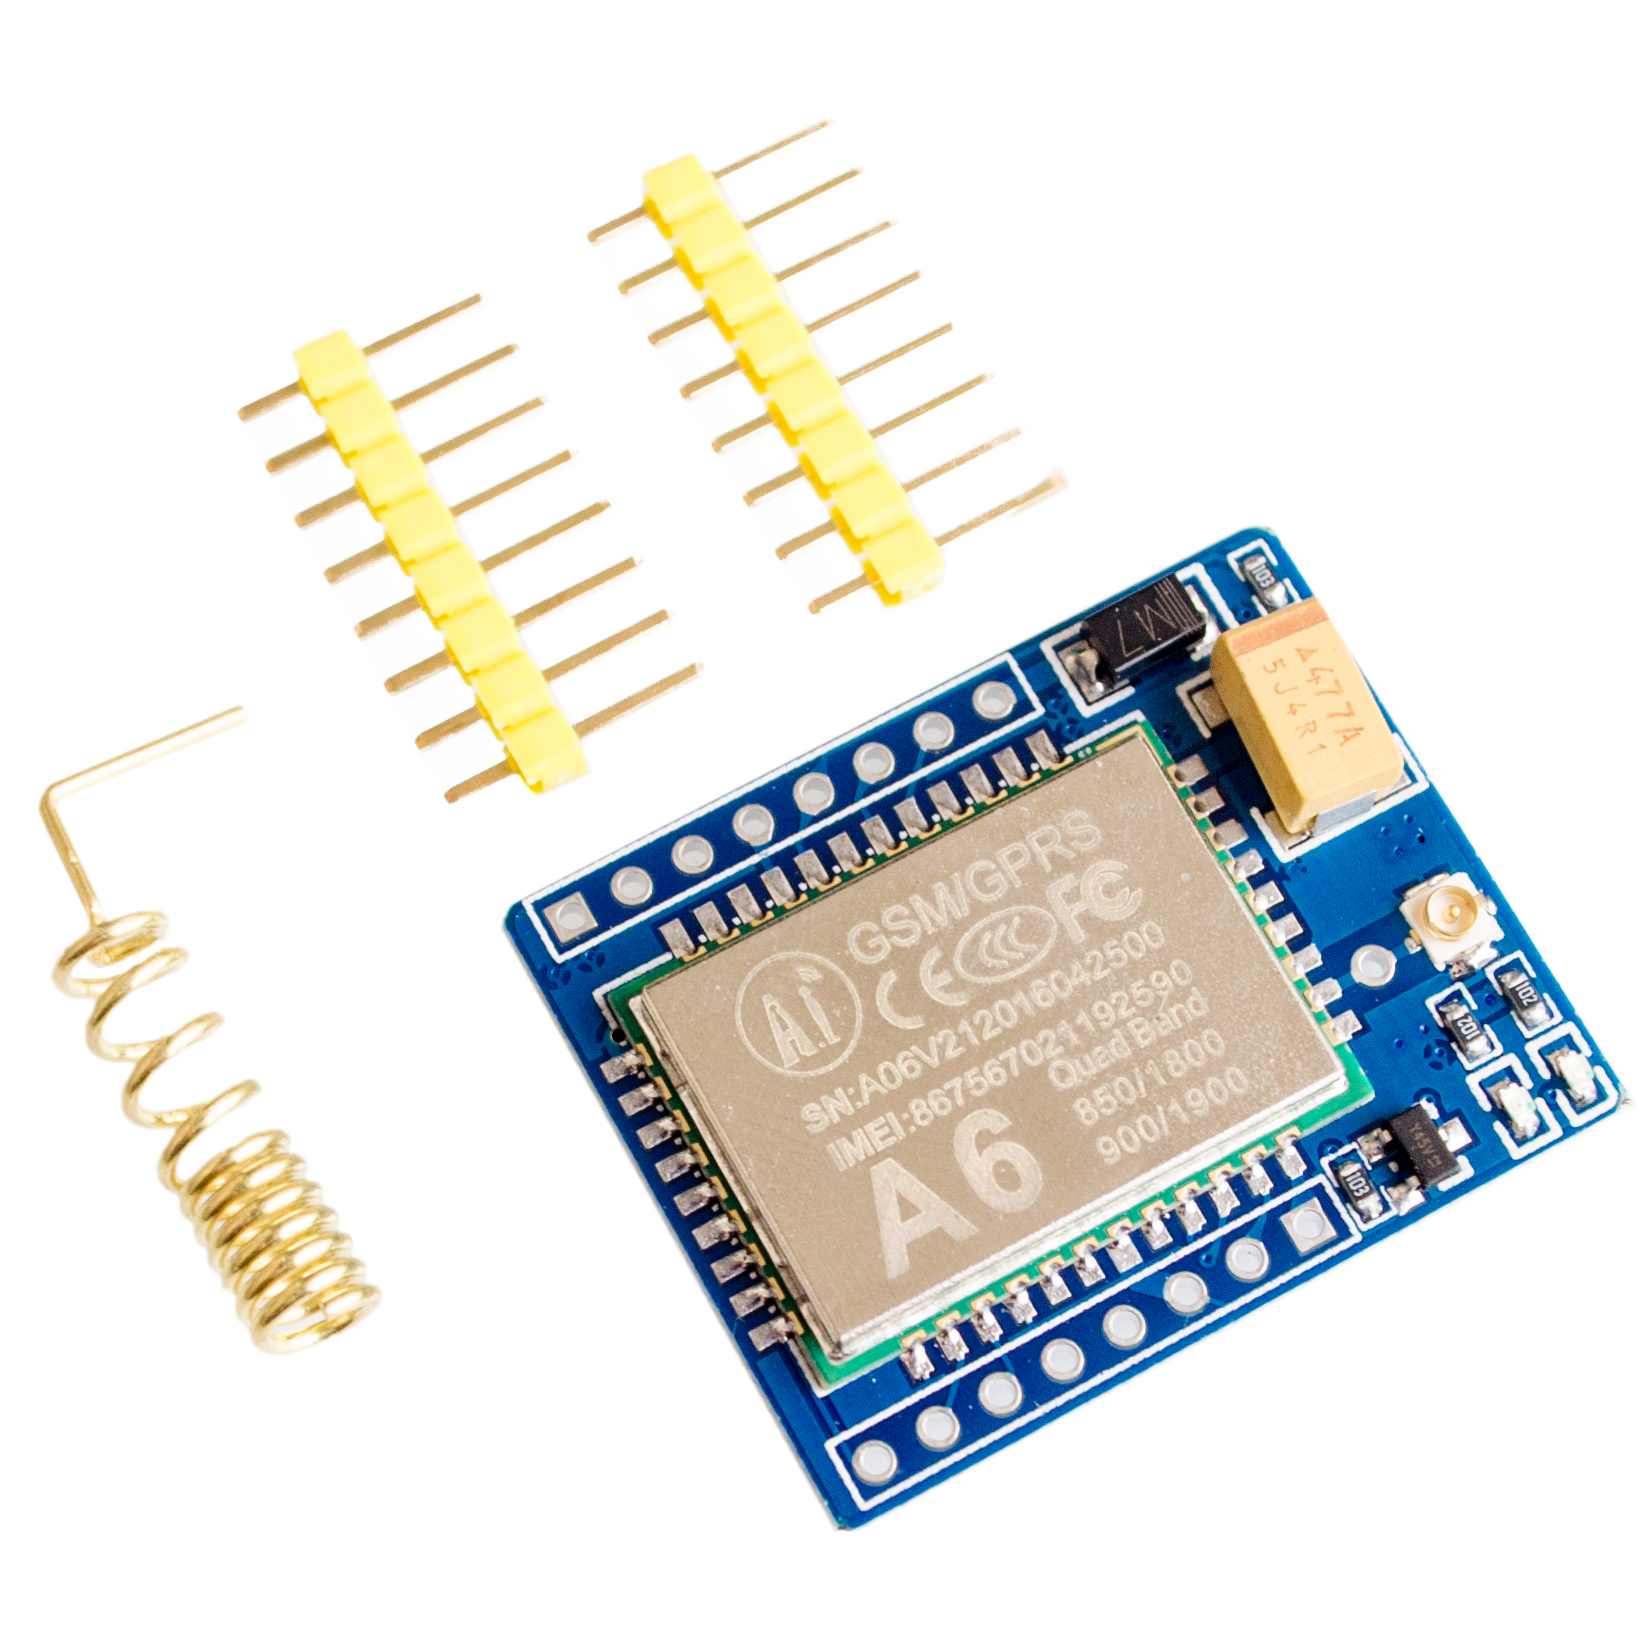 mini A6 GPRS GSM Module Kit Wireless Extension Module Board Antenna Tested Worldwide Store for SIM800L(China (Mainland))